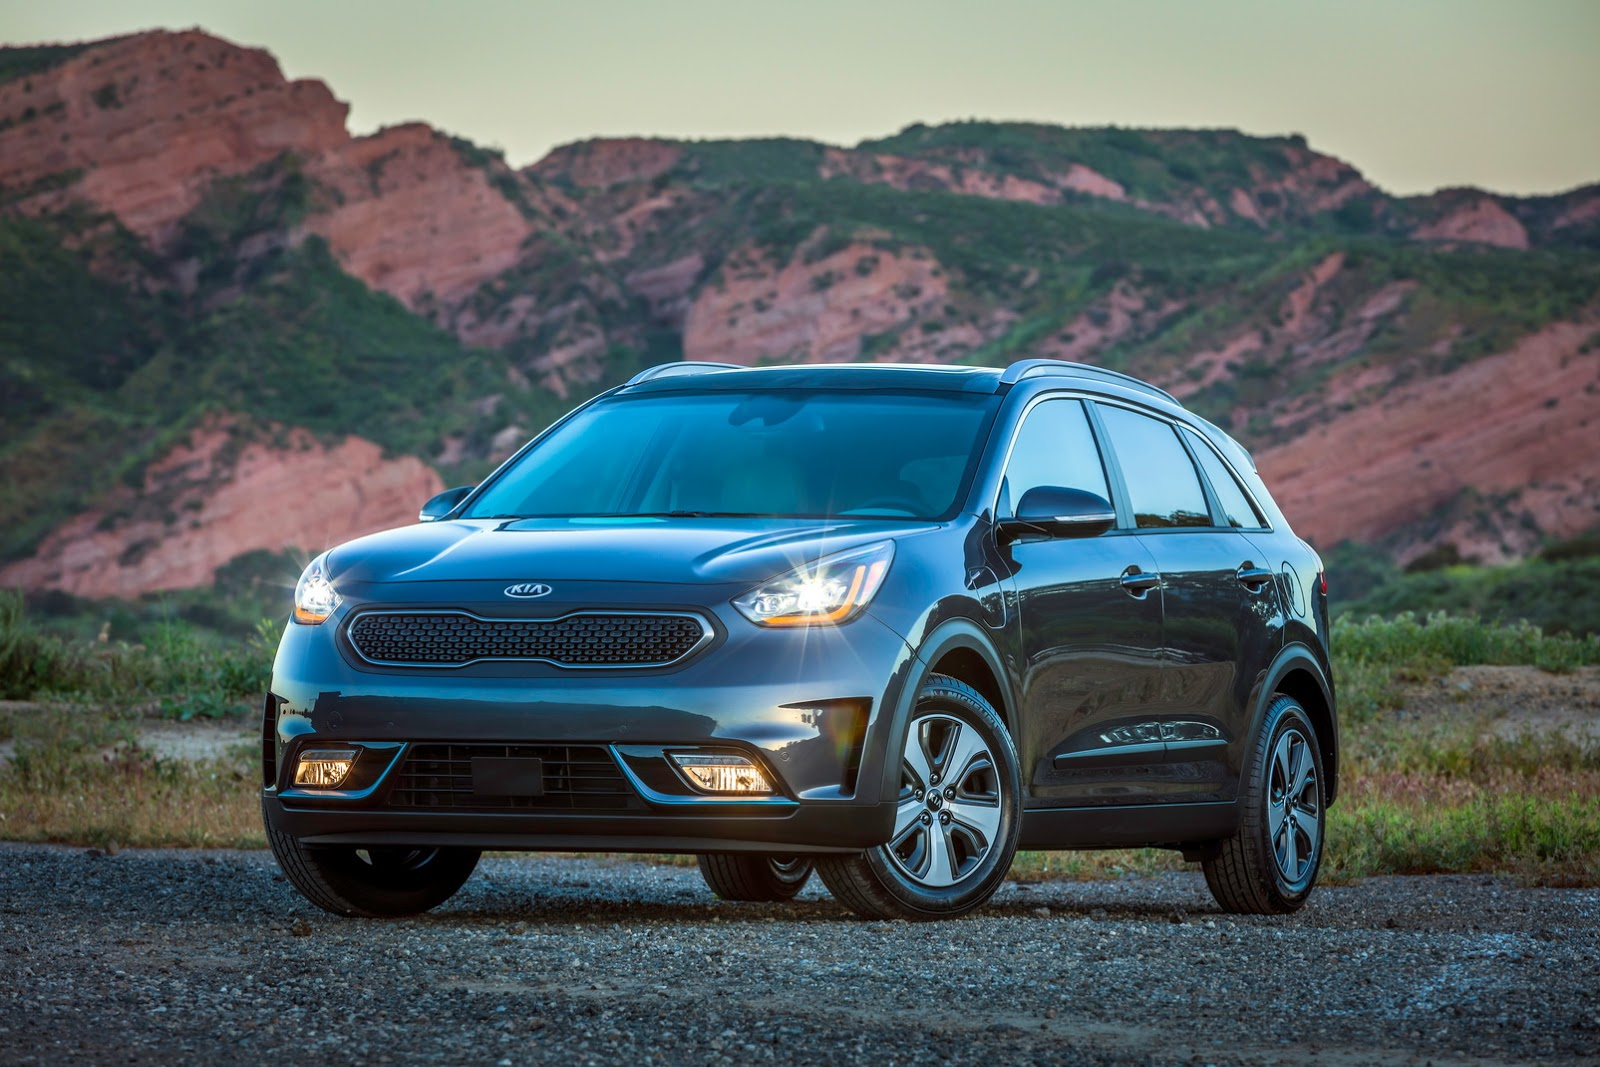 2018 kia niro plug in hybrid epa rated 26 miles ev range autoevolution. Black Bedroom Furniture Sets. Home Design Ideas